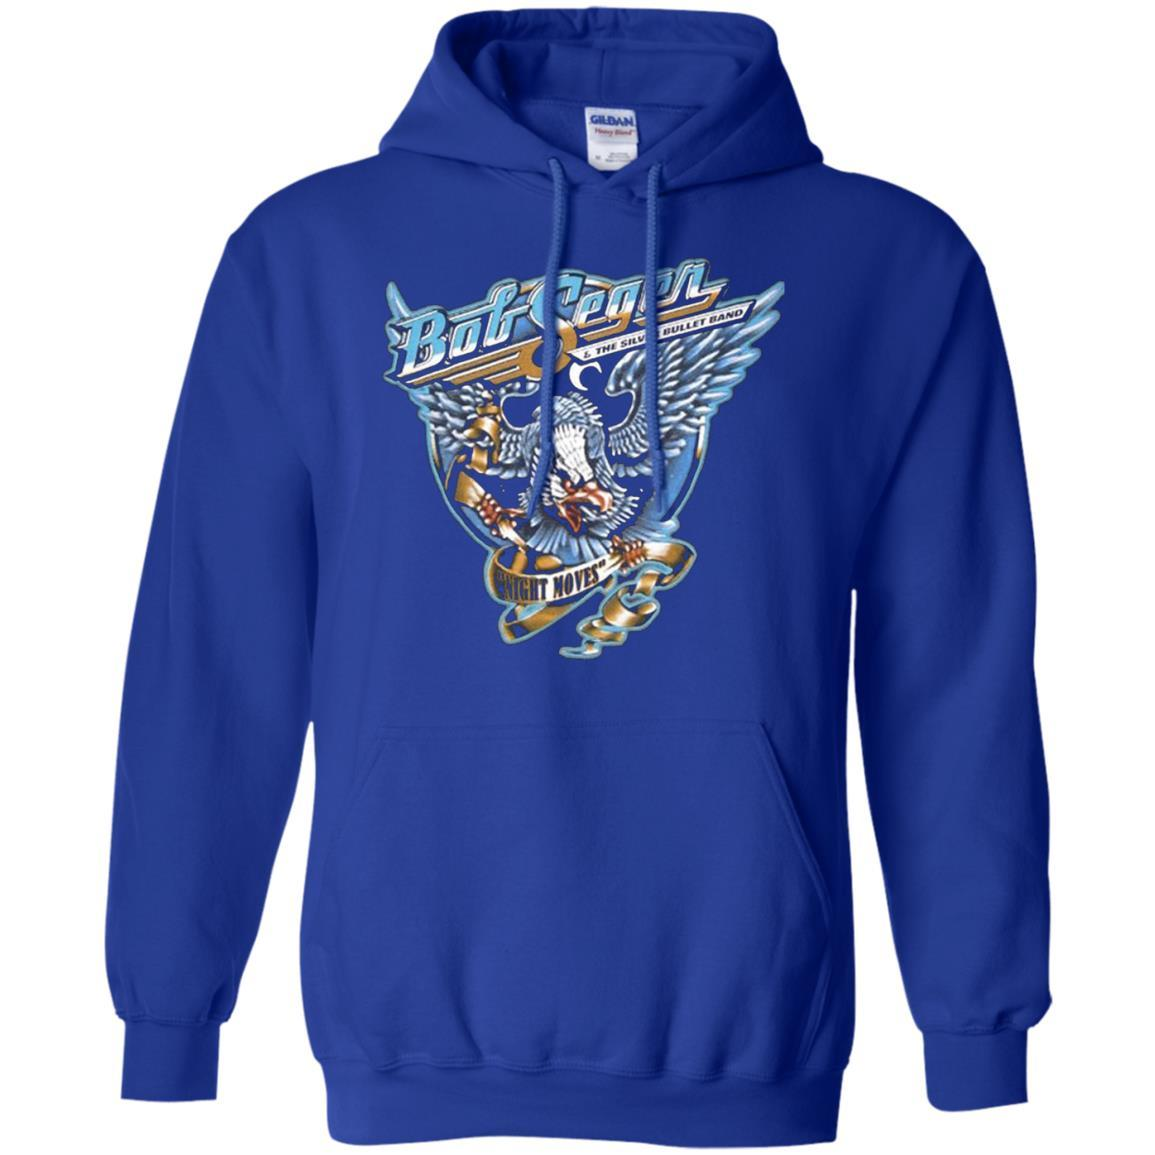 BOB SEGER NIGHT MOVES Classic Rock Music Vintage - Pullover Hoodie Royal / 5XL